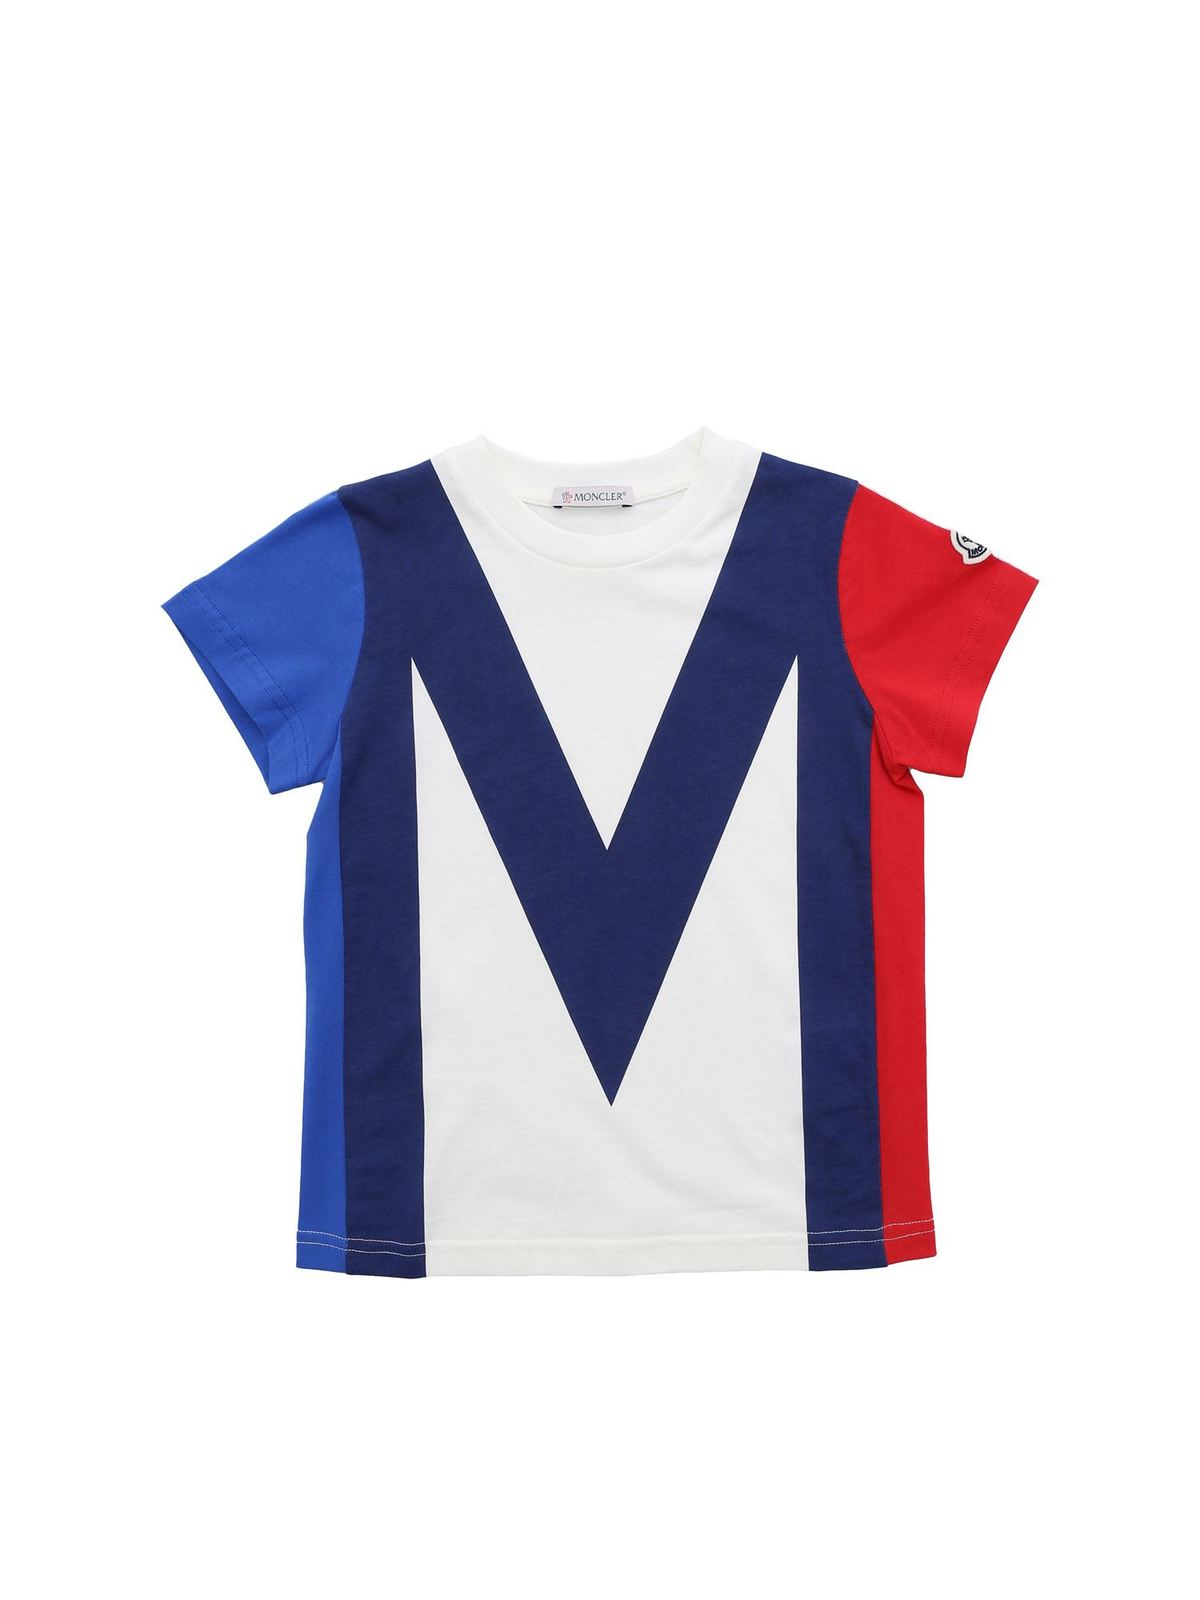 MONCLER JR LOGO PATCH T-SHIRT IN BLUE RED AND IVORY